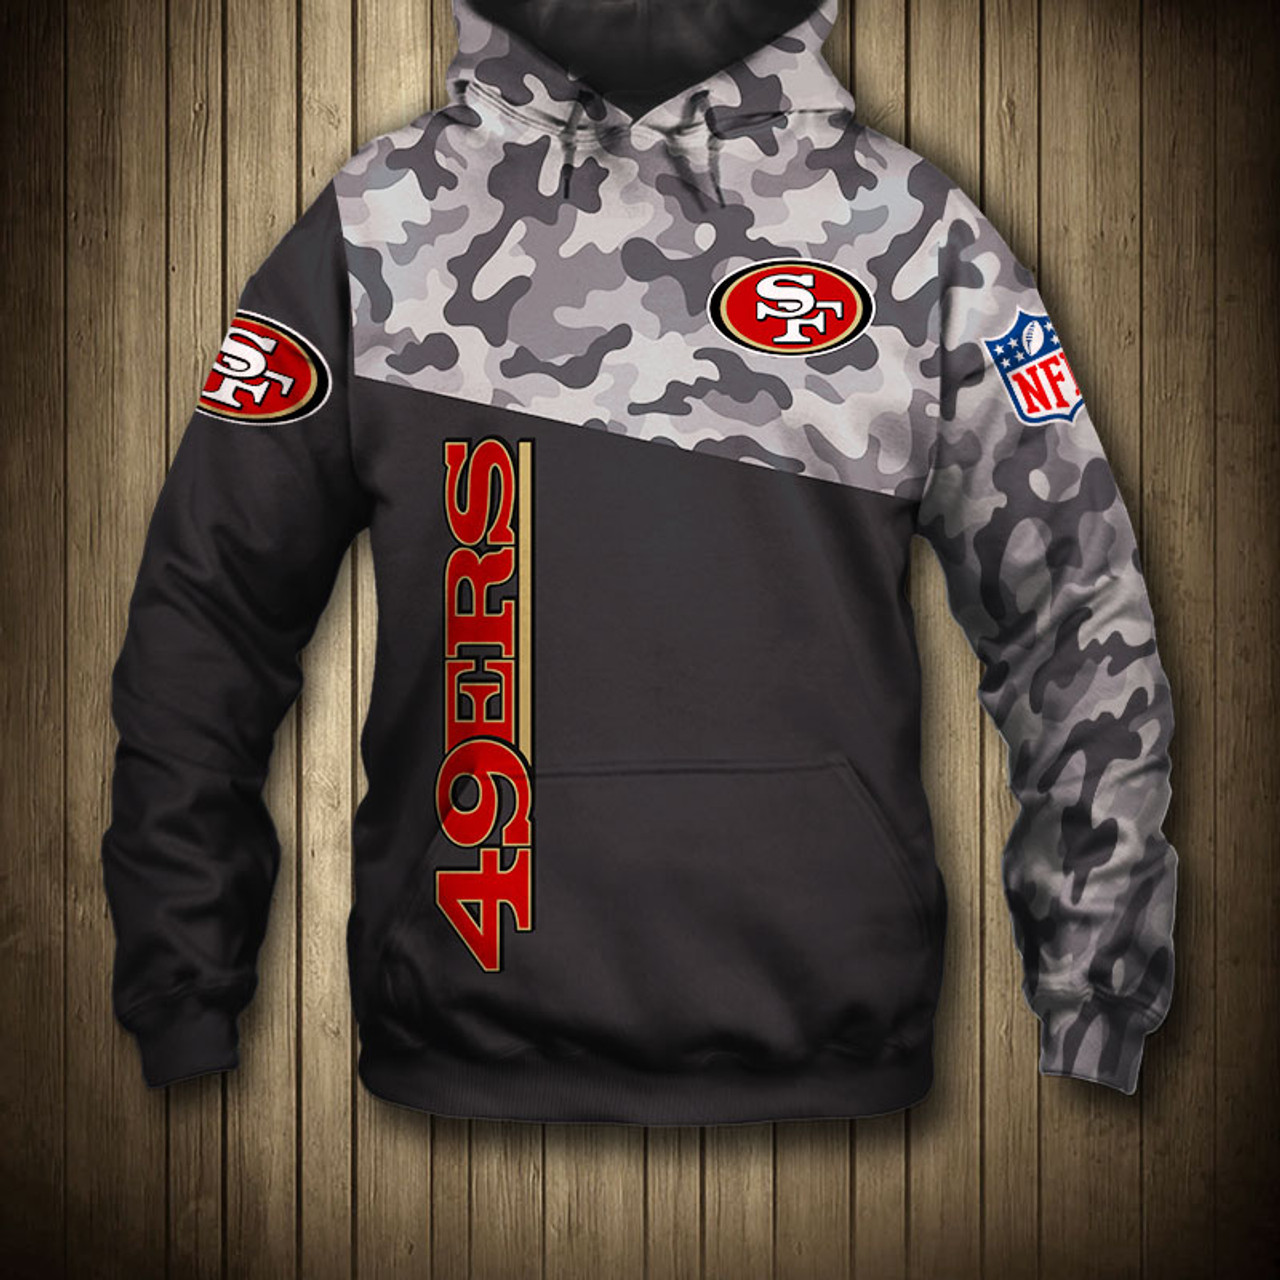 finest selection e05d0 e9bee **(OFFICIAL-N.F.L.SAN-FRANCISCO-49ERS-CAMO.DESIGN-PULLOVER-HOODIES/3D-CUSTOM-49ERS-LOGOS  & OFFICIAL-49ERS-TEAM-COLORS/NICE-3D-DETAILED-GRAPHIC-PRINTED...